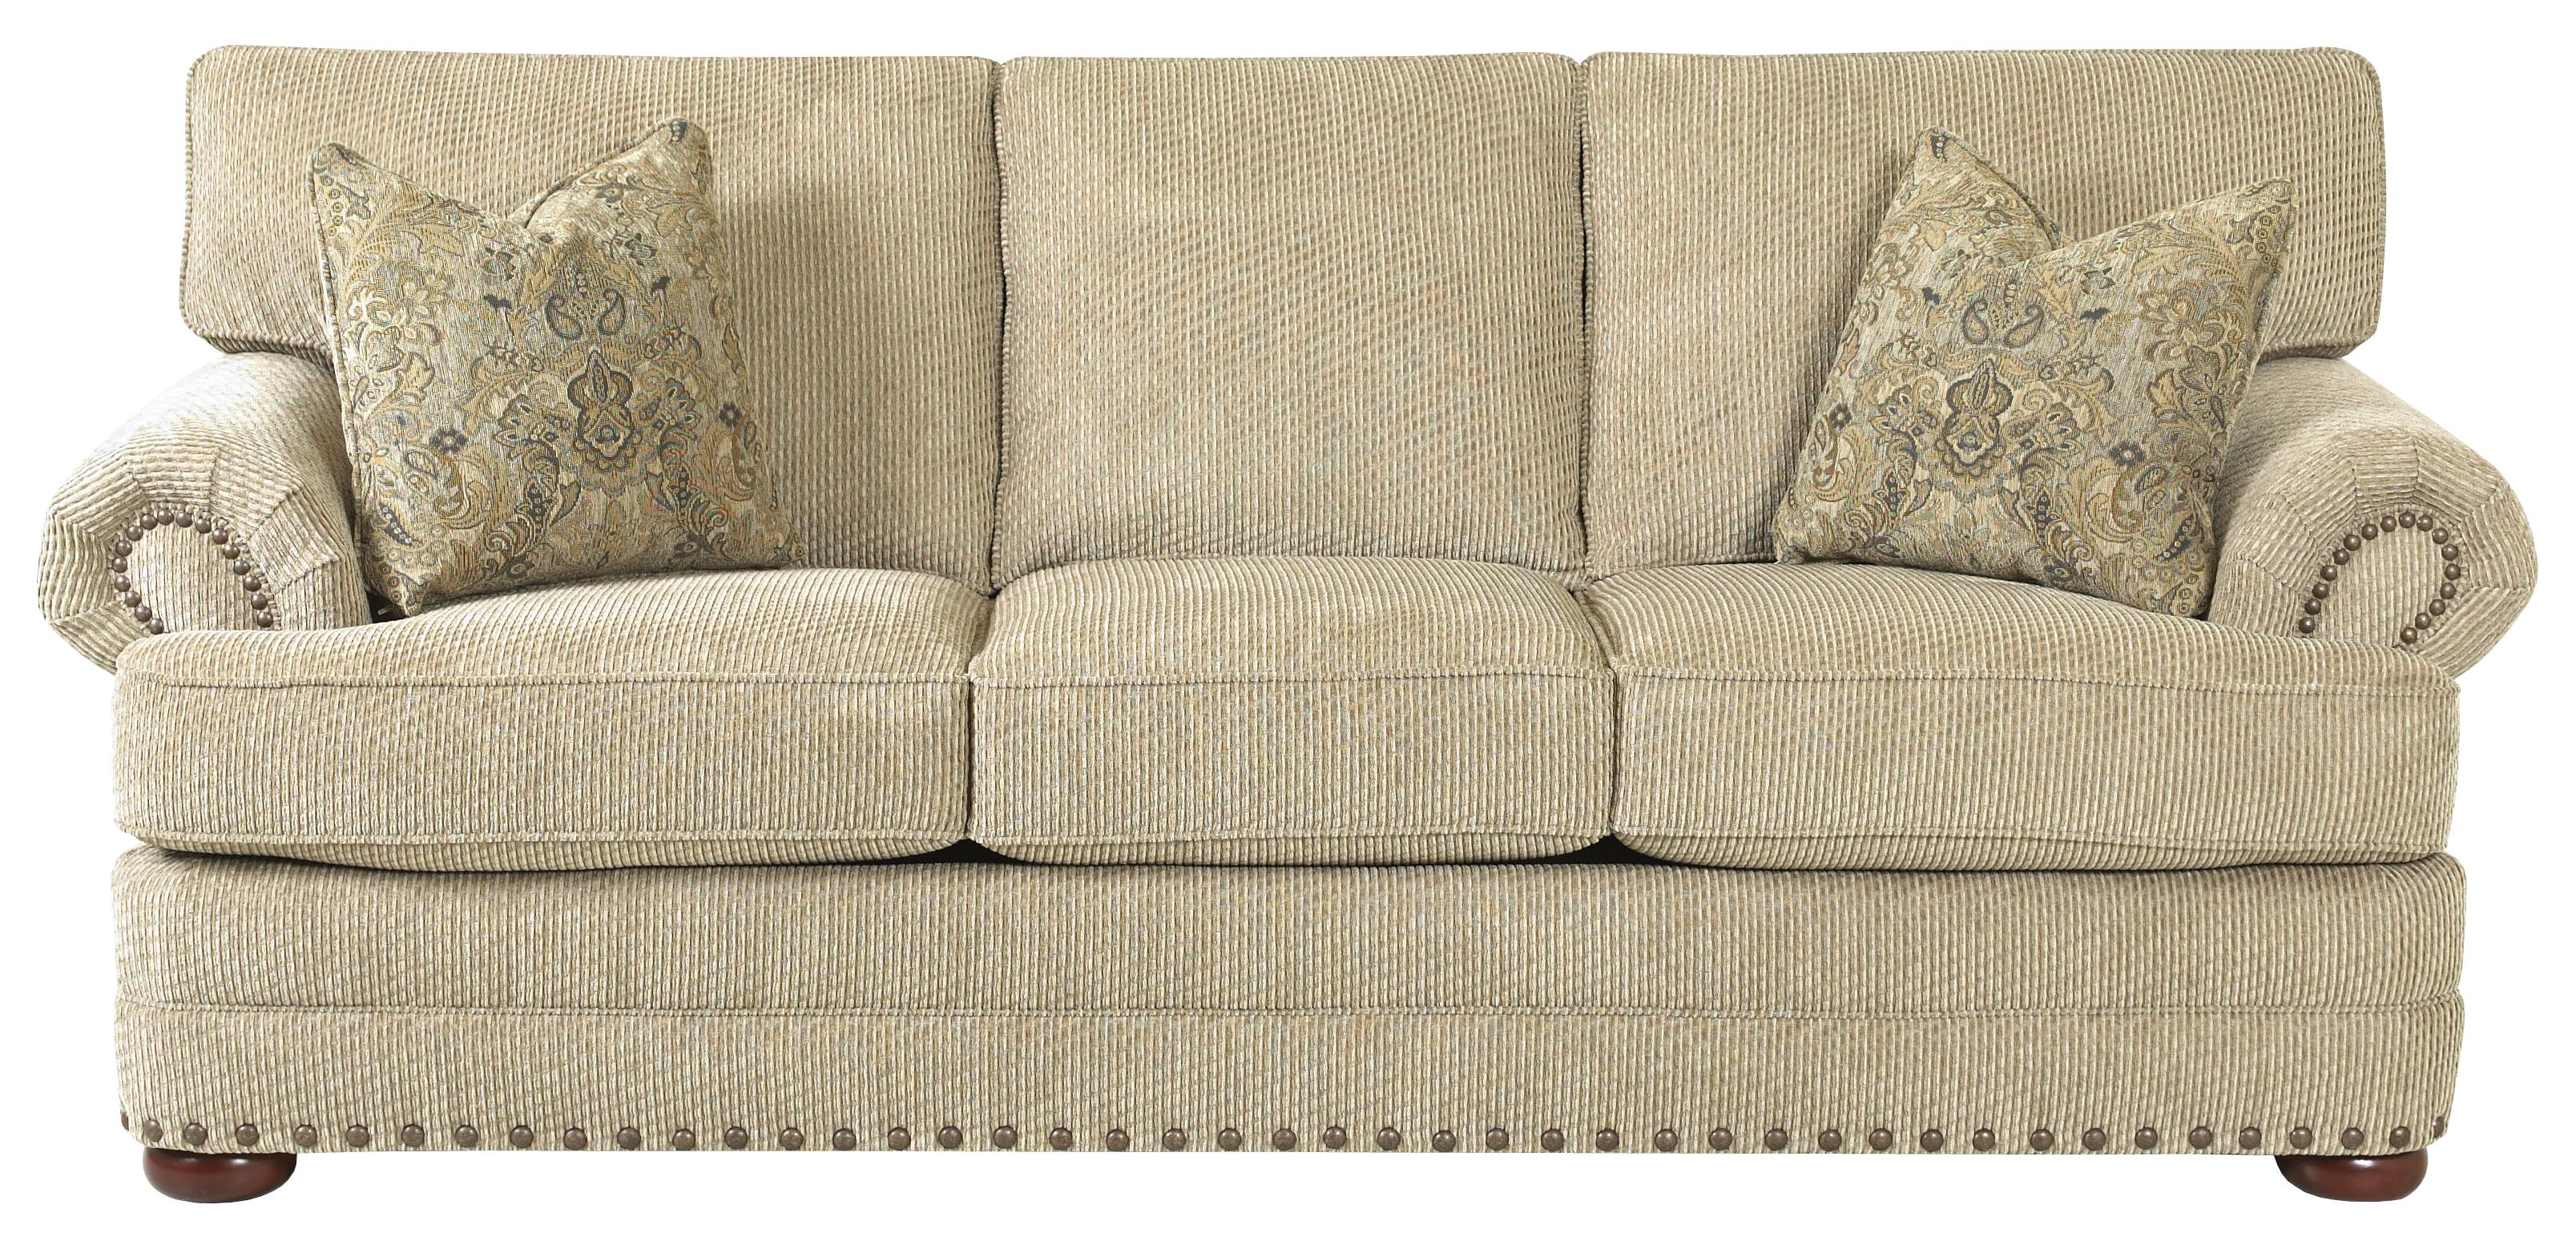 Traditional Styled Sofa with Nail Head Accent Trim